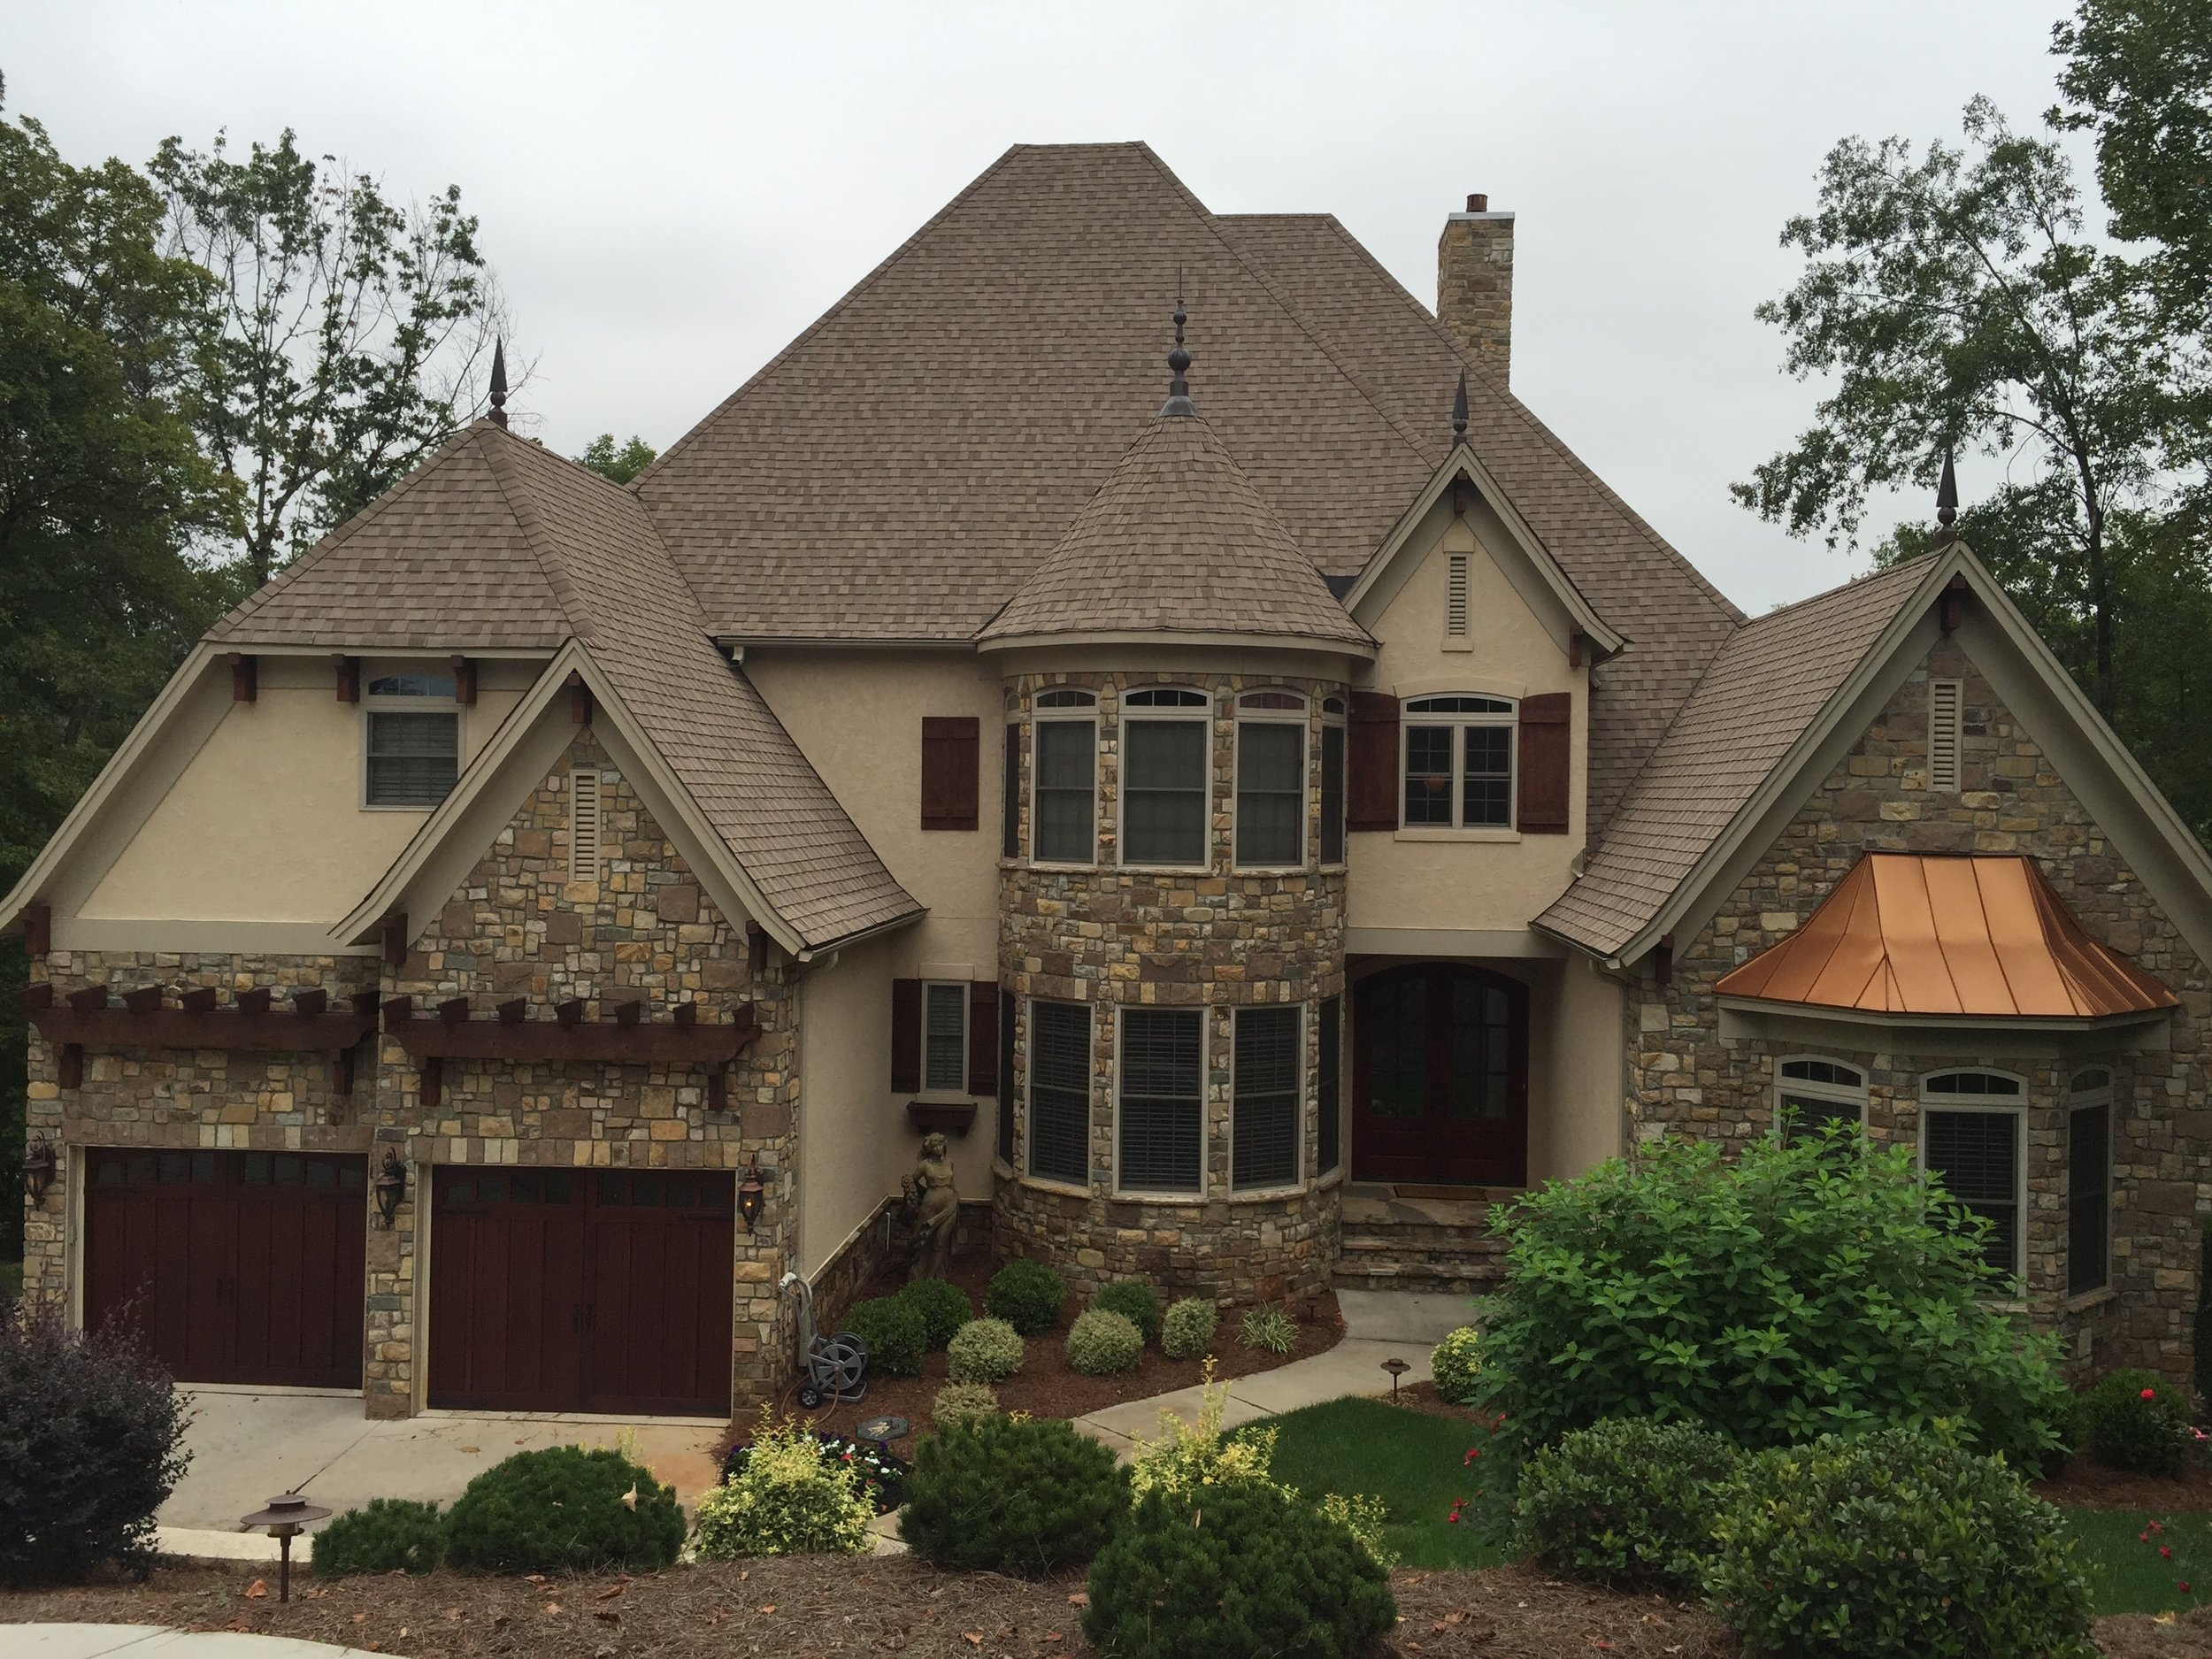 Traditional stone and stucco home on Lake Norman with beautiful wood accents.